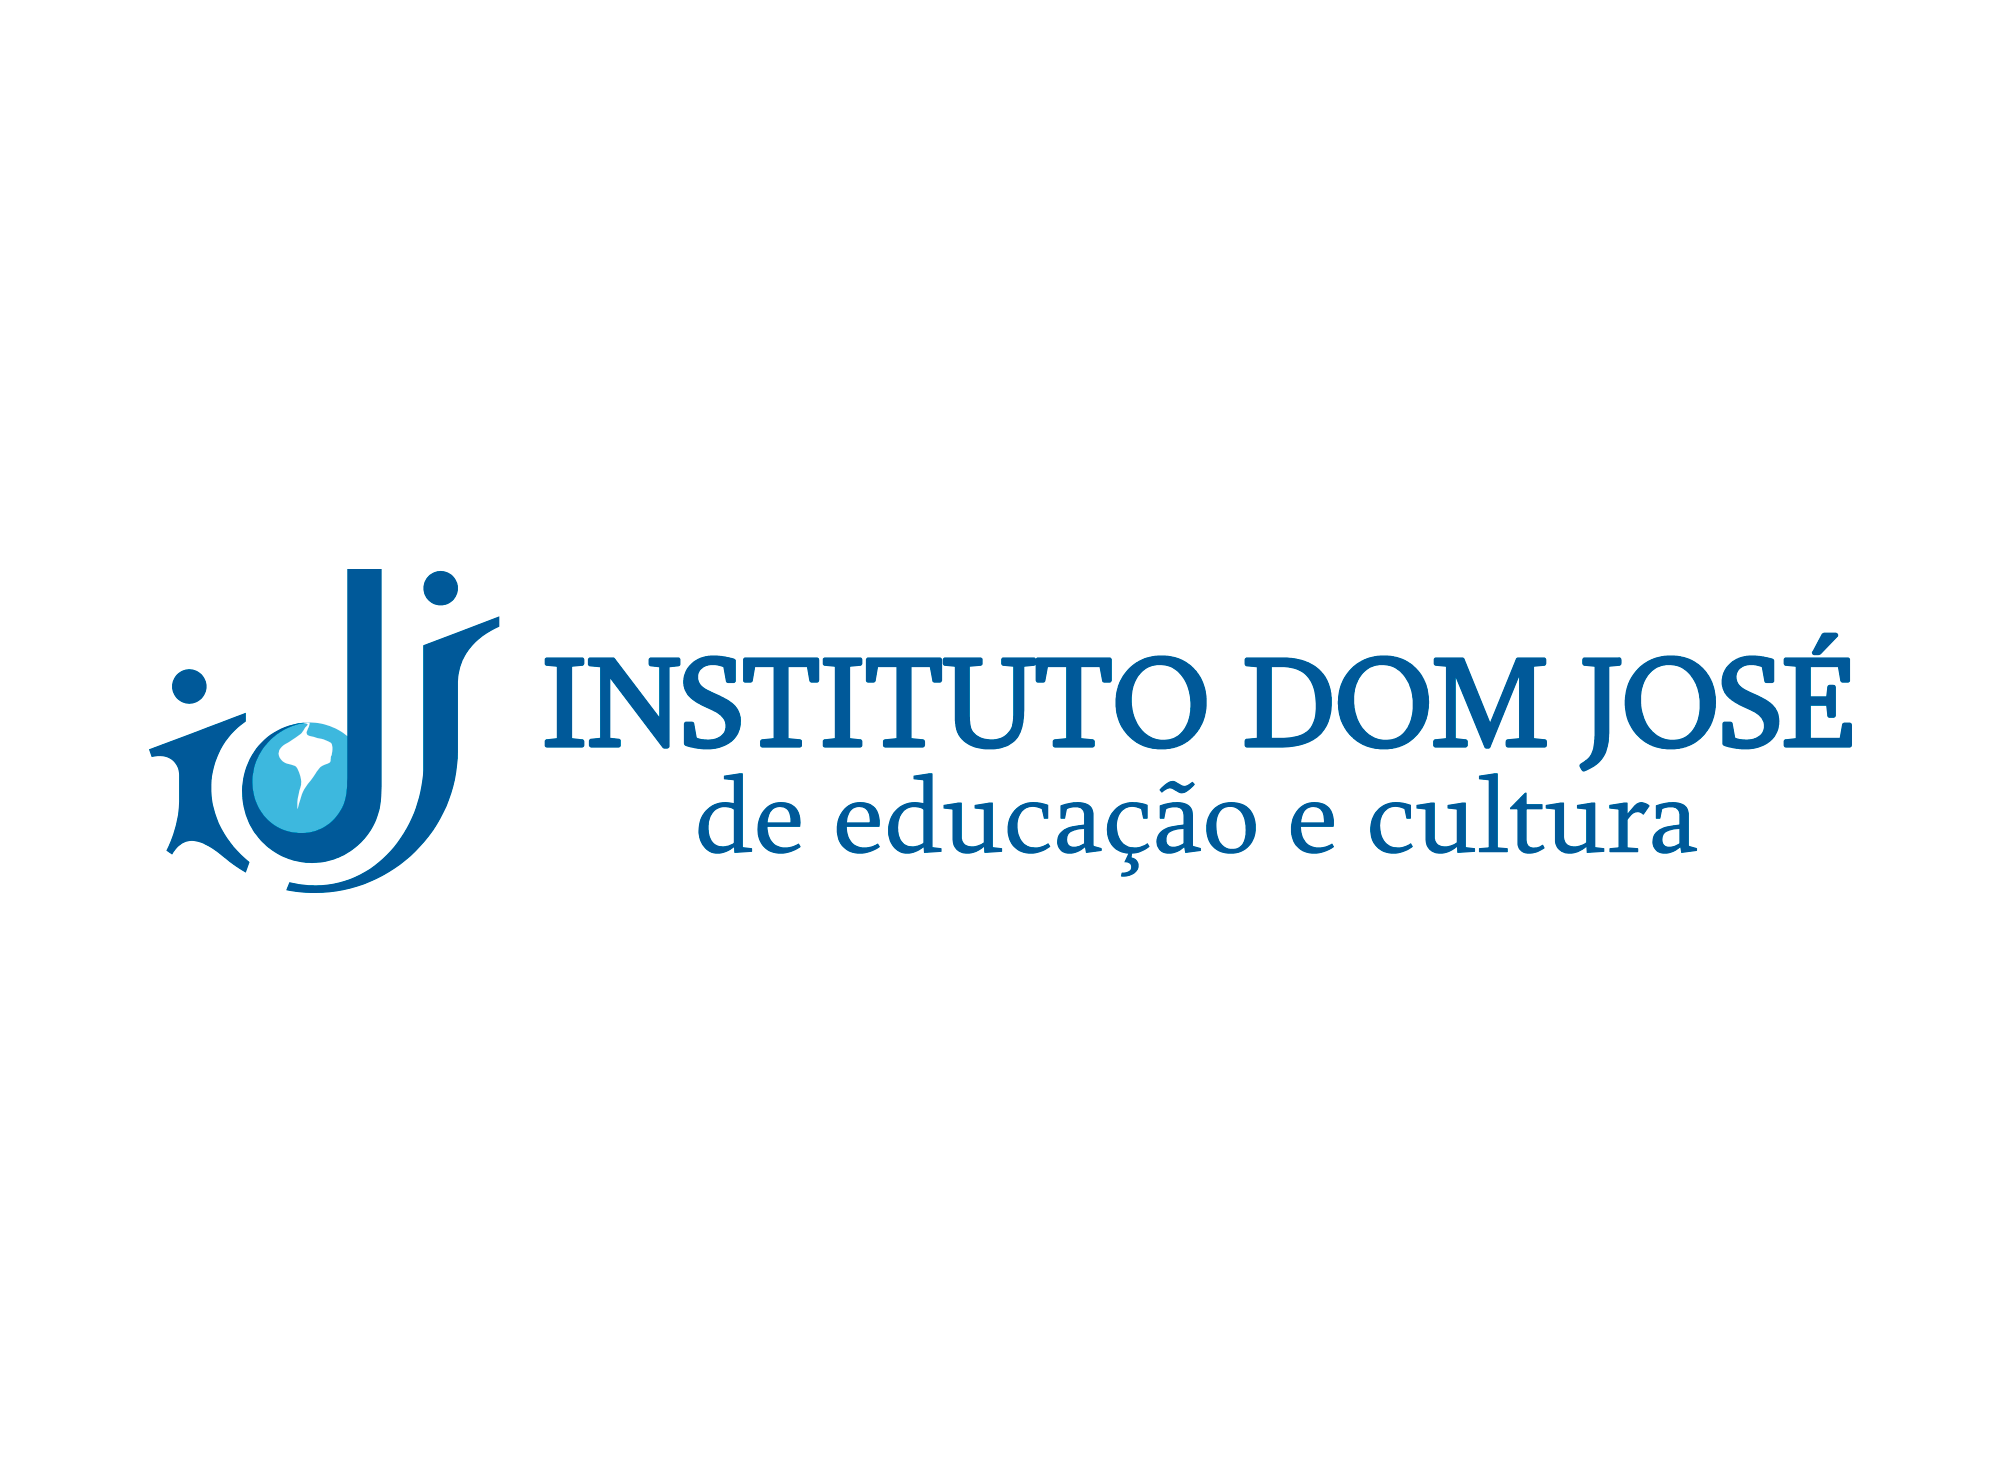 instittuto-dom-jose-isj-clientes-atendidos-agencia-diretriz-digital-marketing-fortaleza